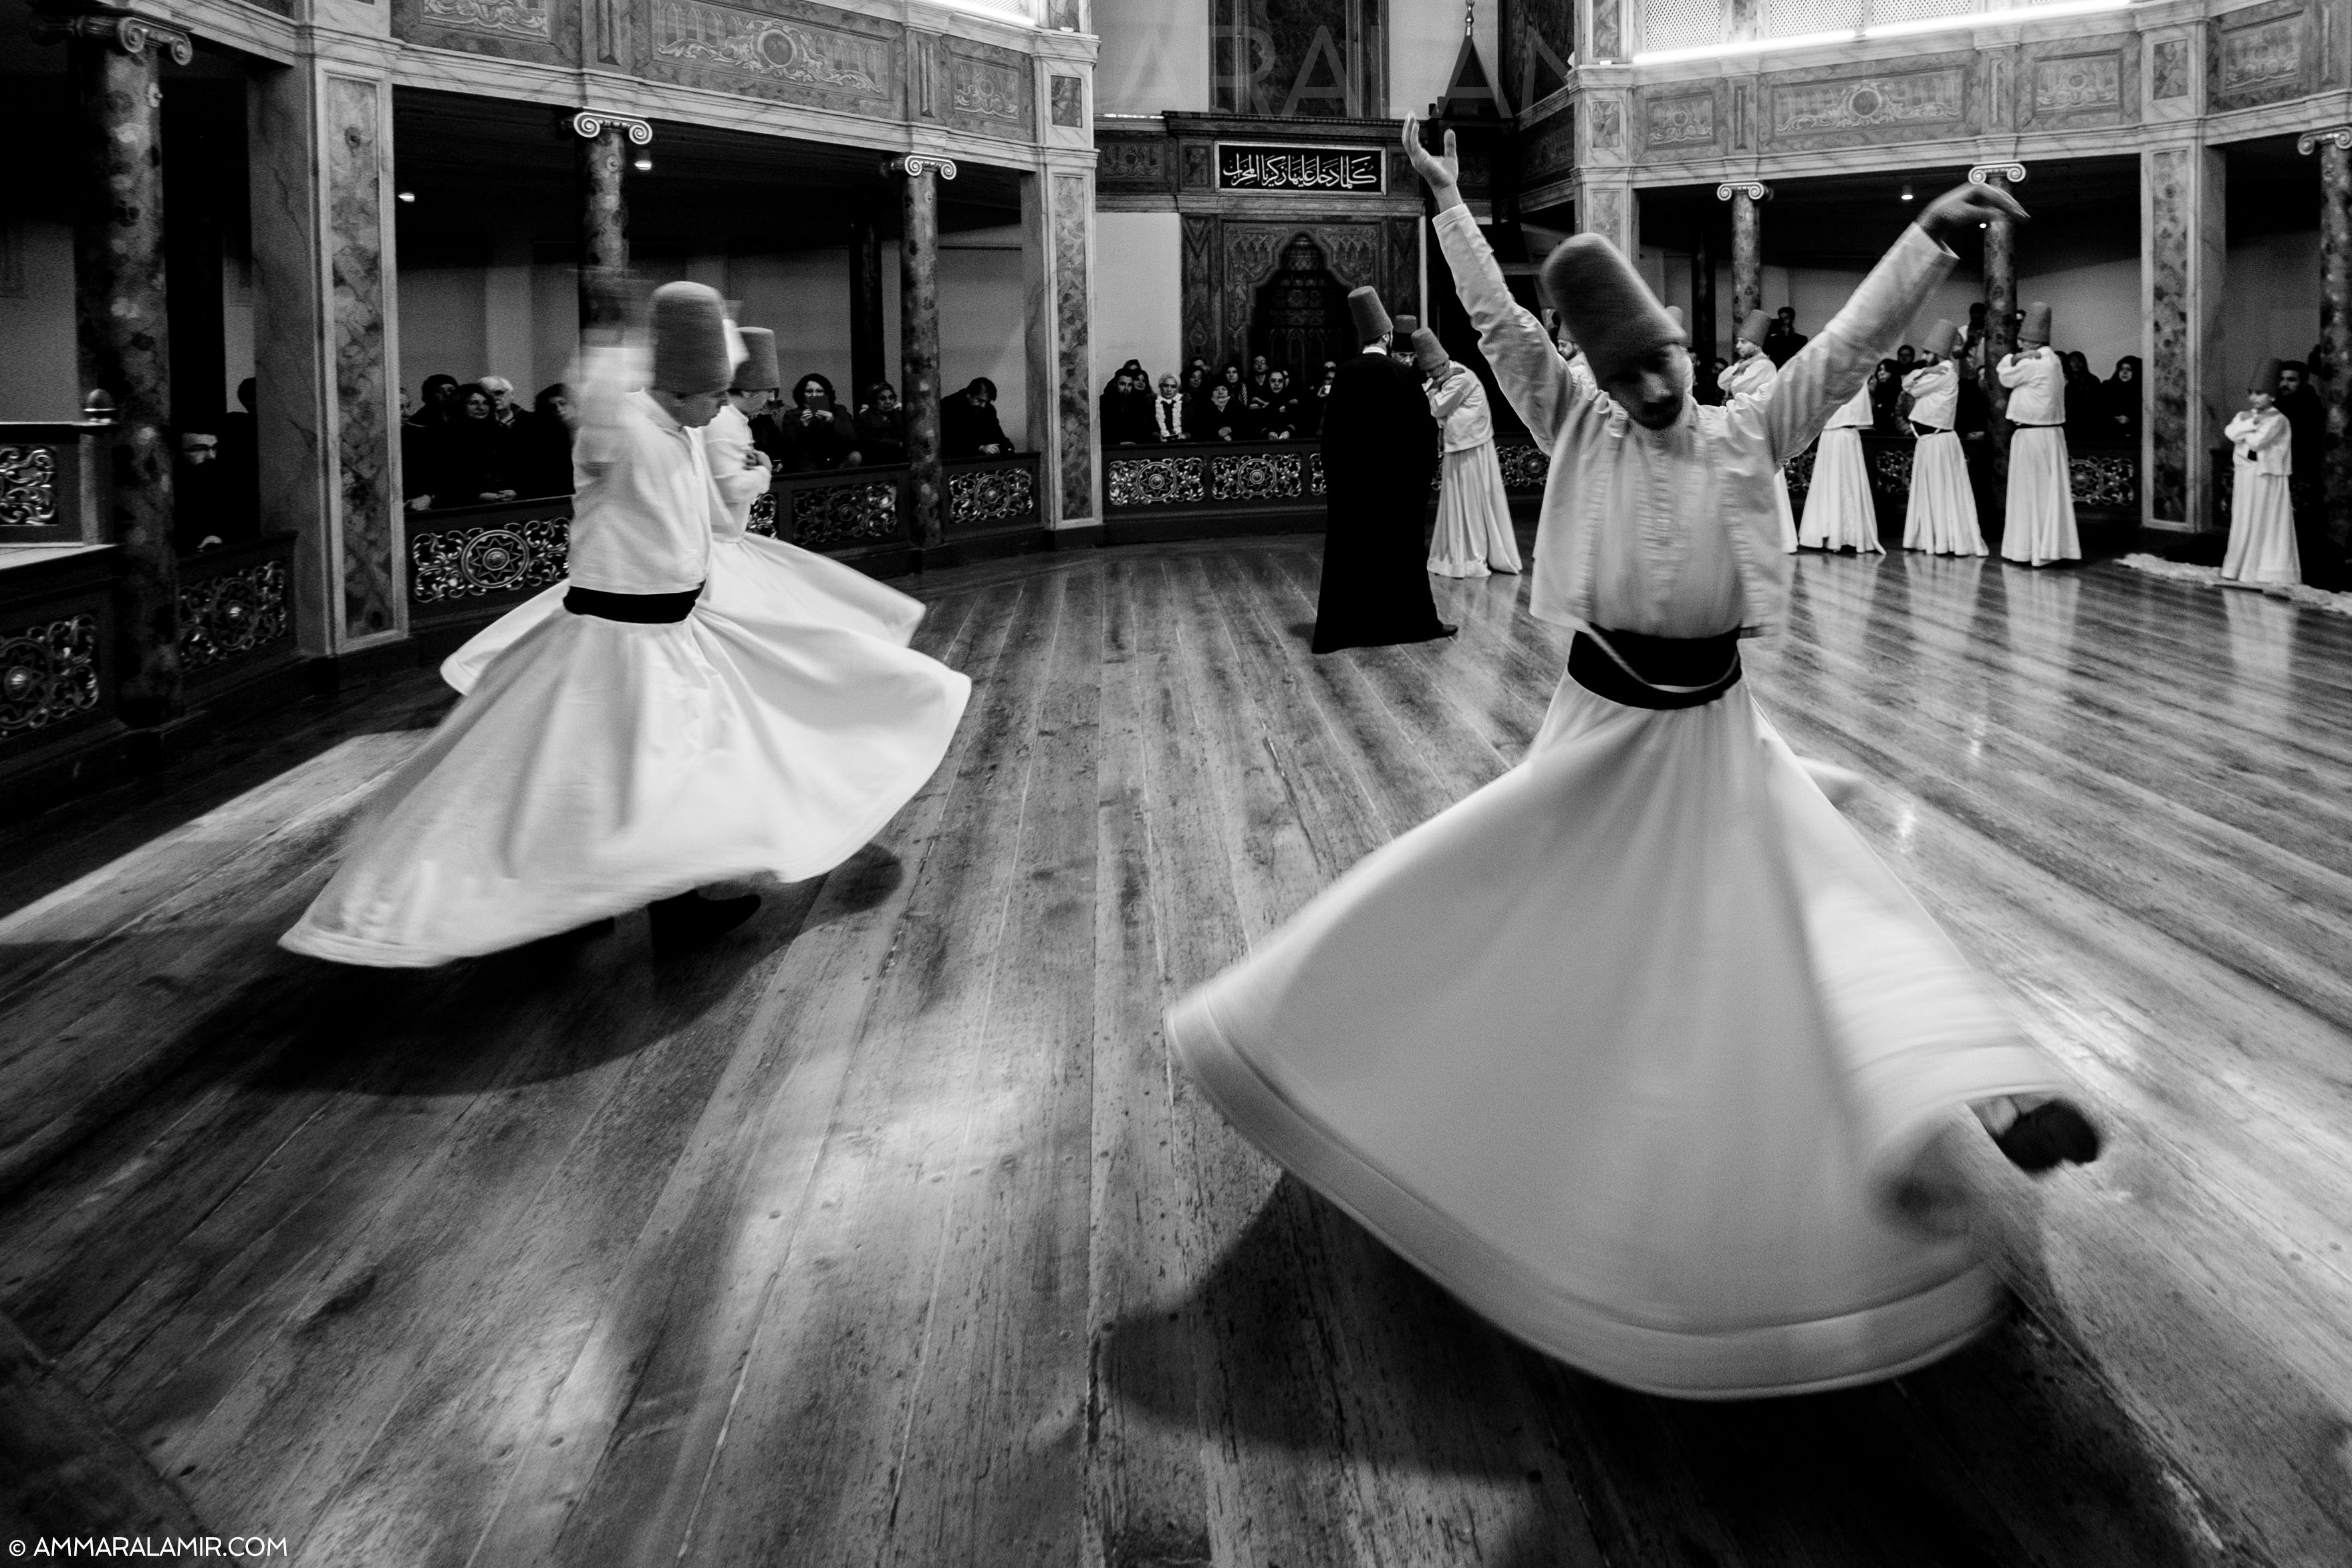 748Whirling Dervishes